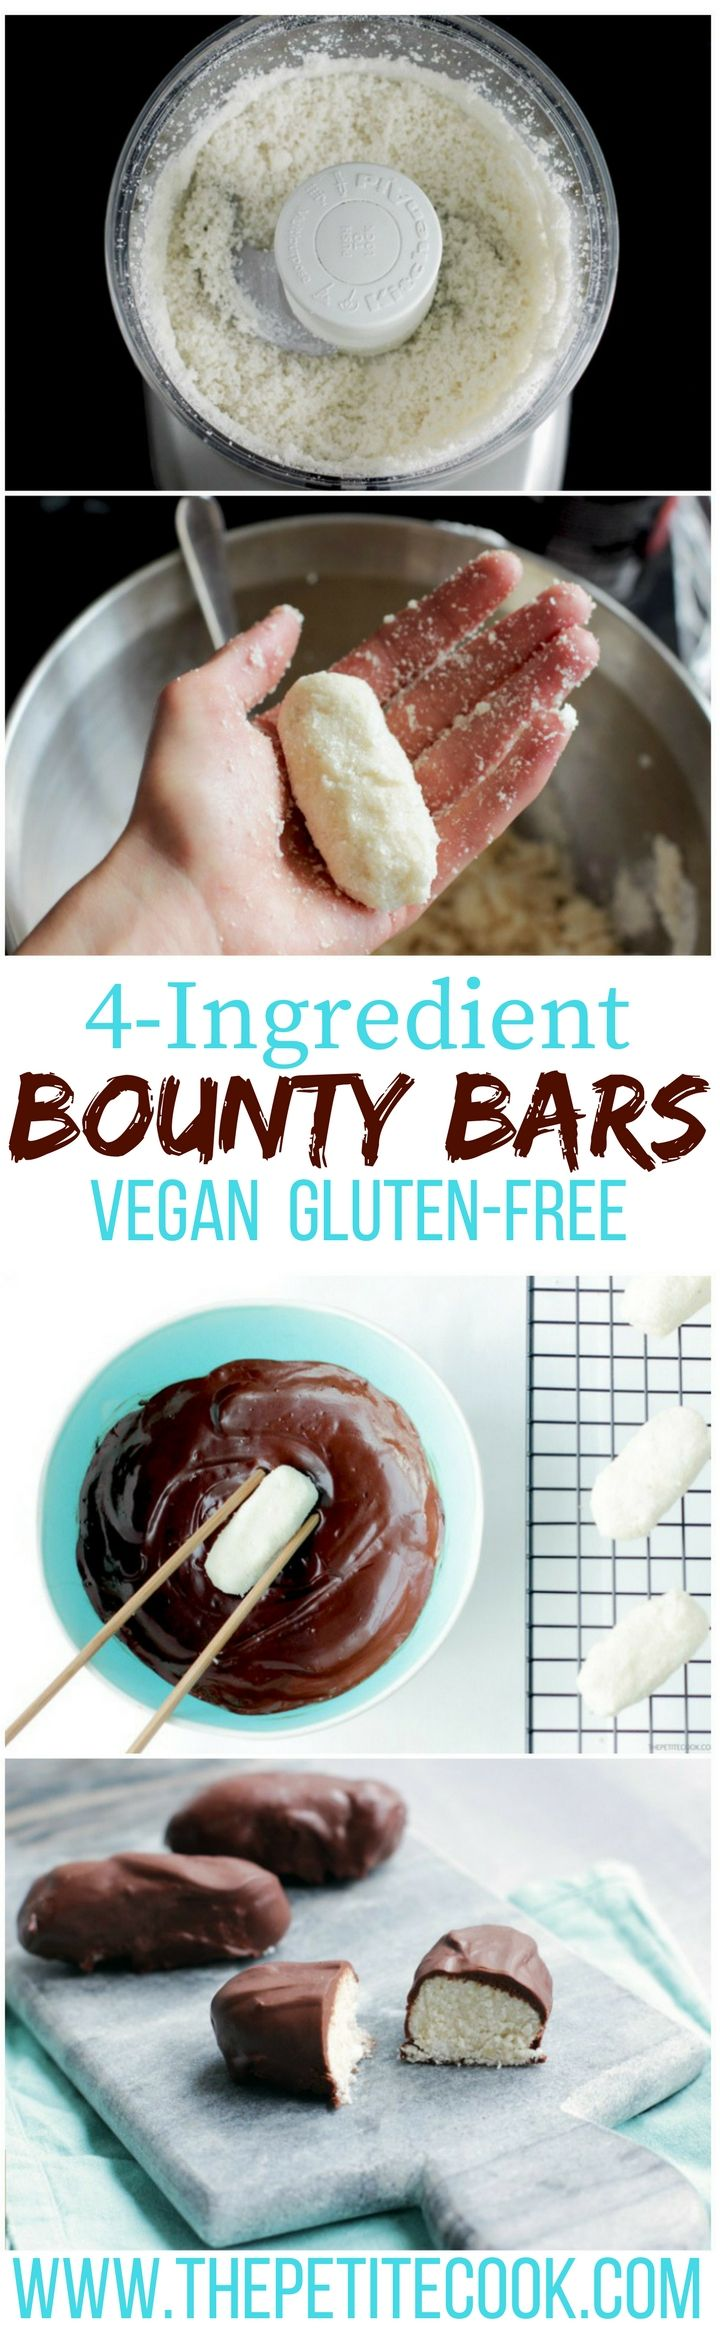 Homemade Bounty Bars are super easy to make and only require 4 healthy wholesome ingredients! Plus, they're vegan, dairy-free and gluten-free! Recipe by The Petite Cook